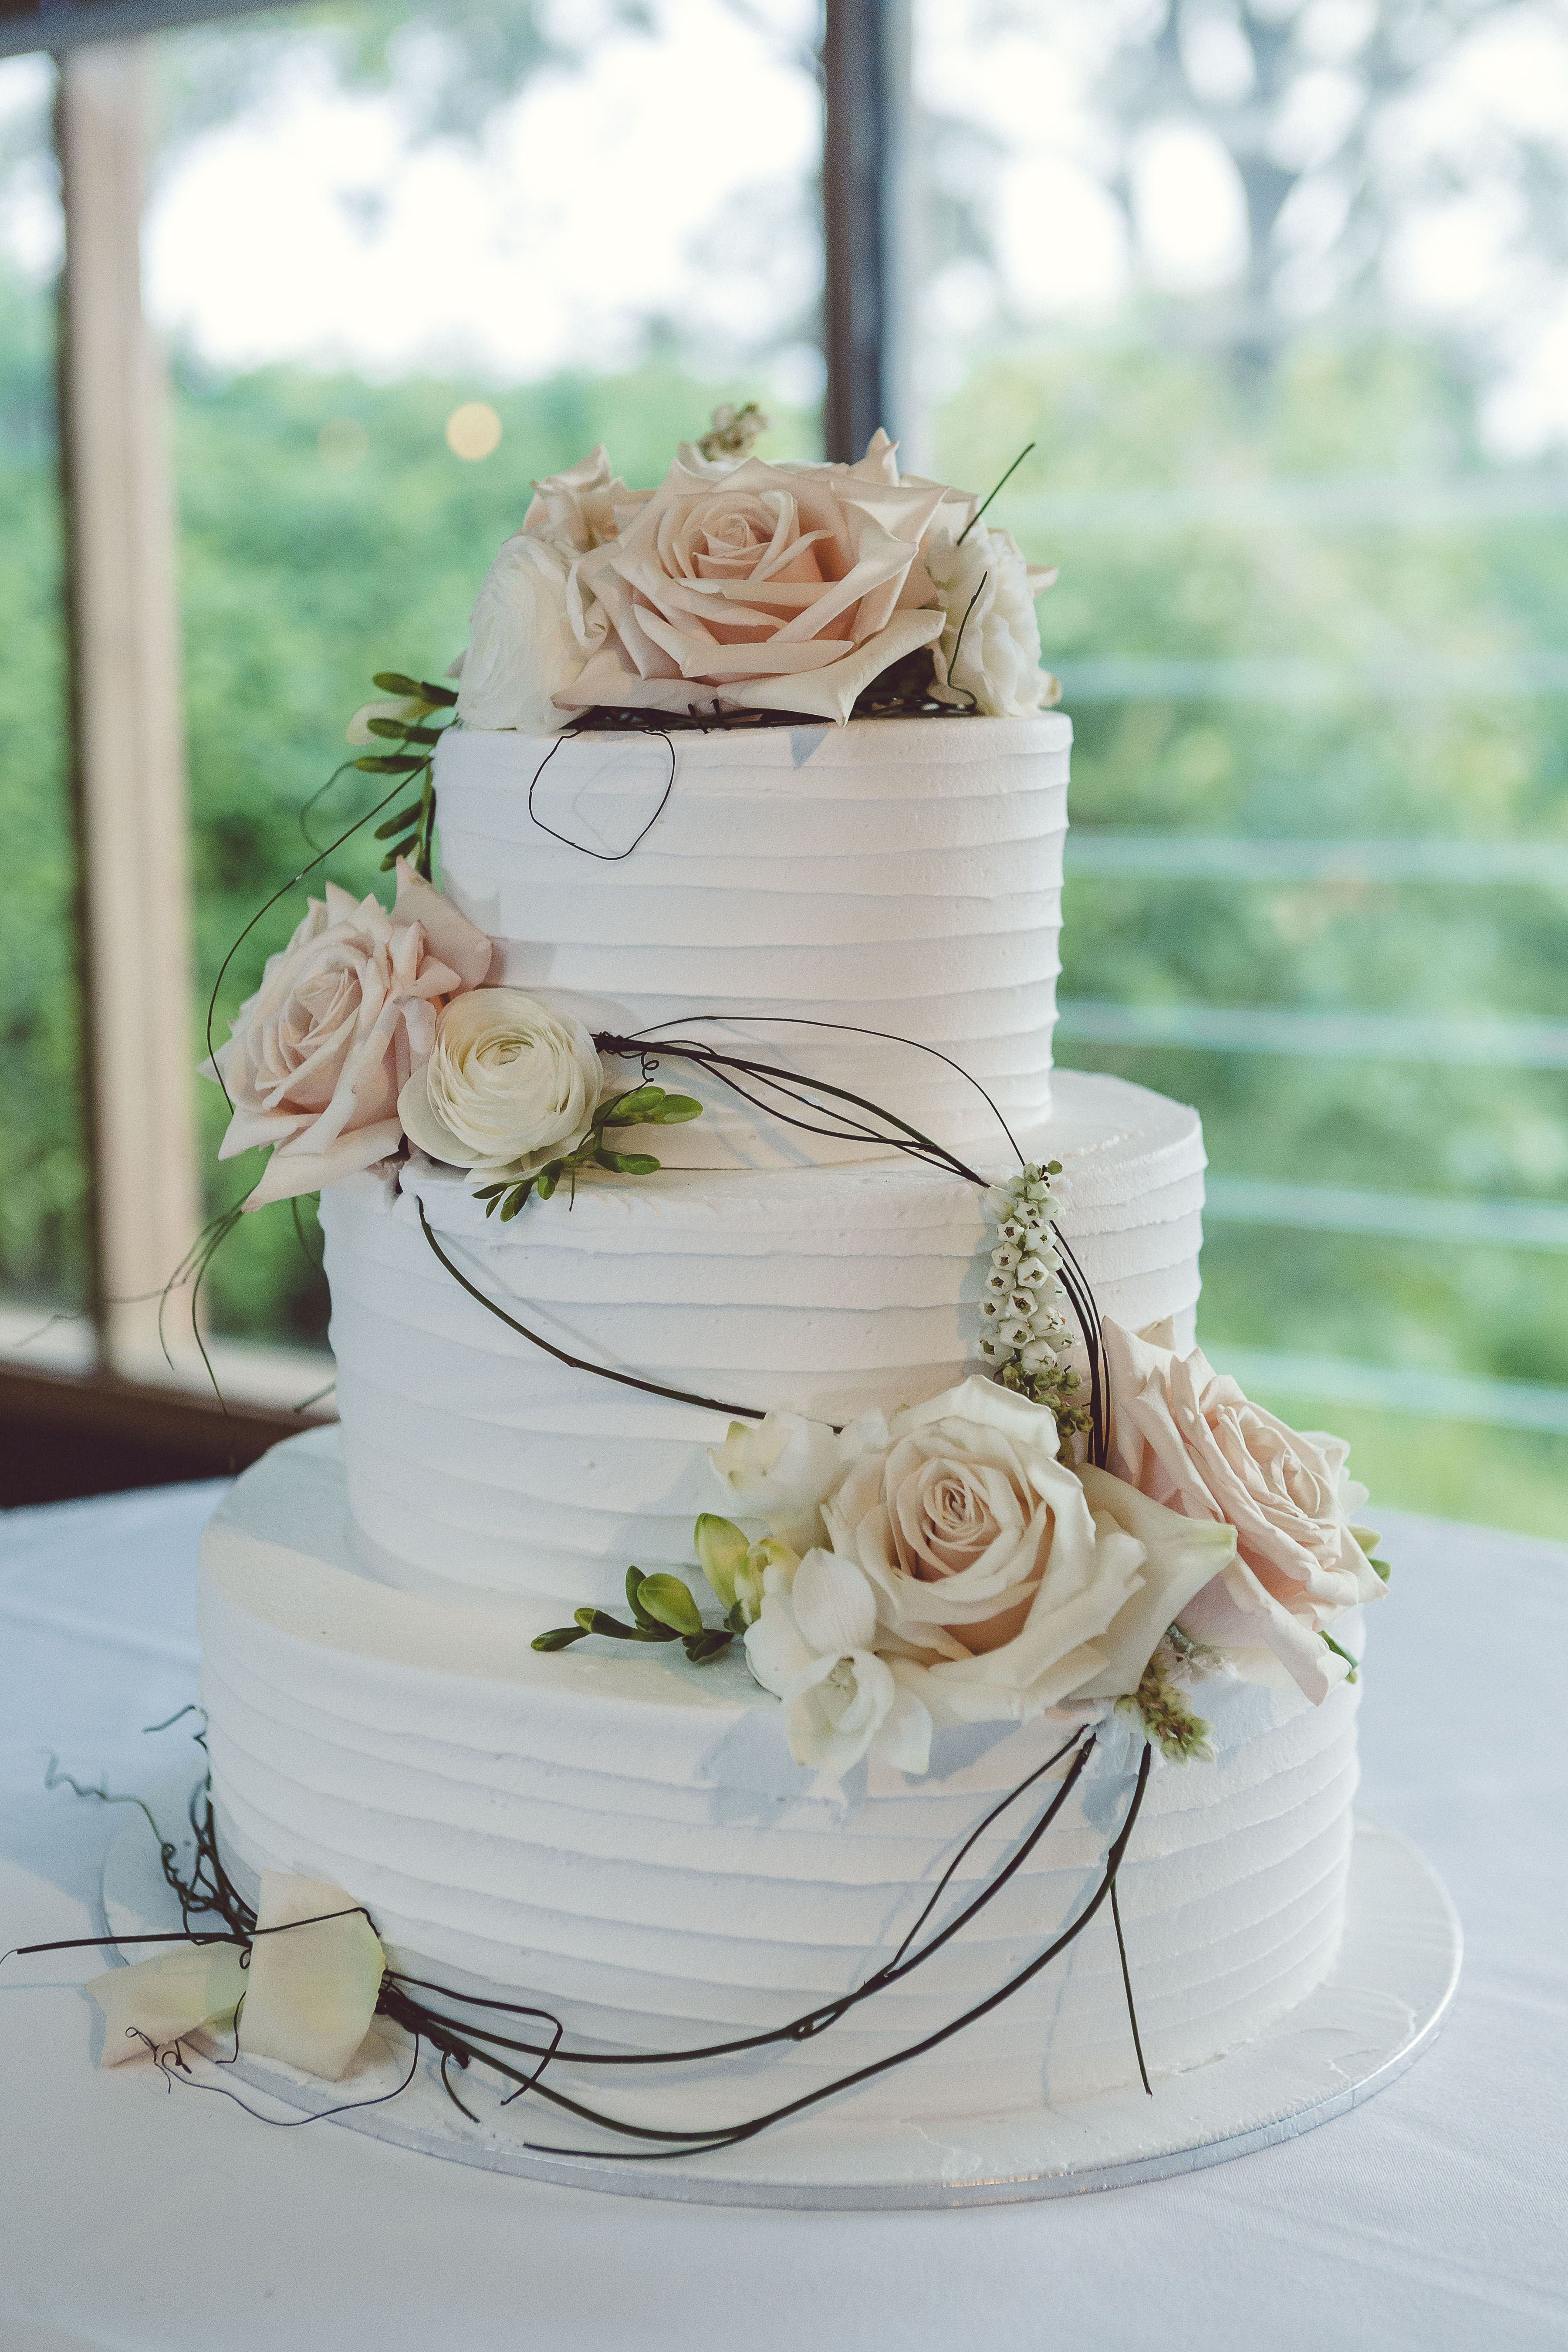 3 Layered Wedding Cakes  wedding cake 3 tier white icing peach and white flowers